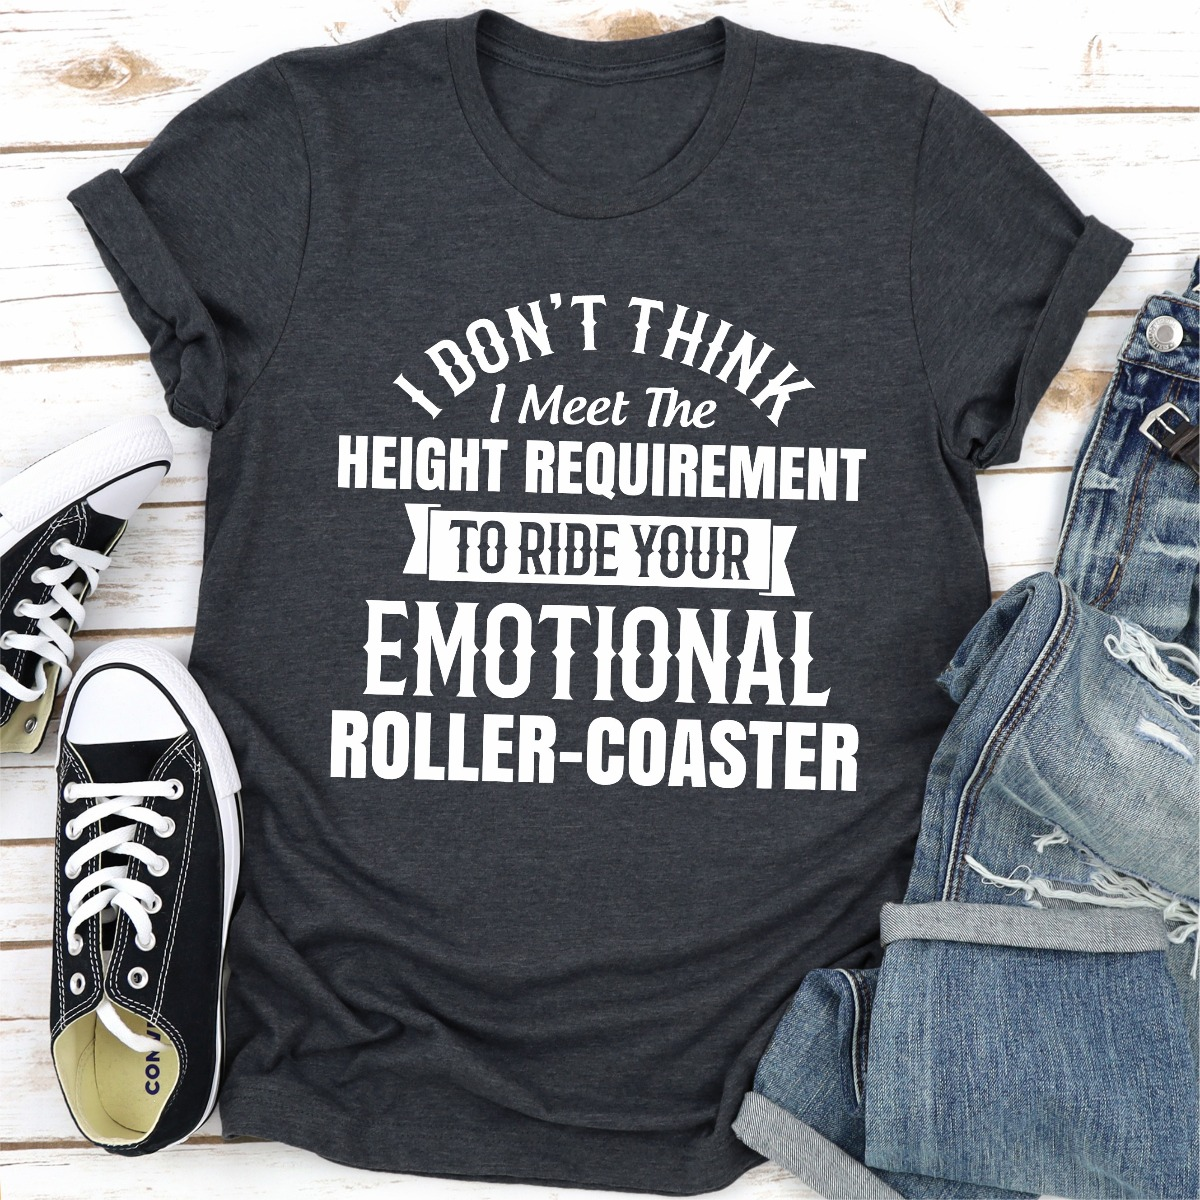 I Don't Think I Meet The Height Requirement To Ride Your Emotional Roller-Coaster (Dark Heather / Xl)